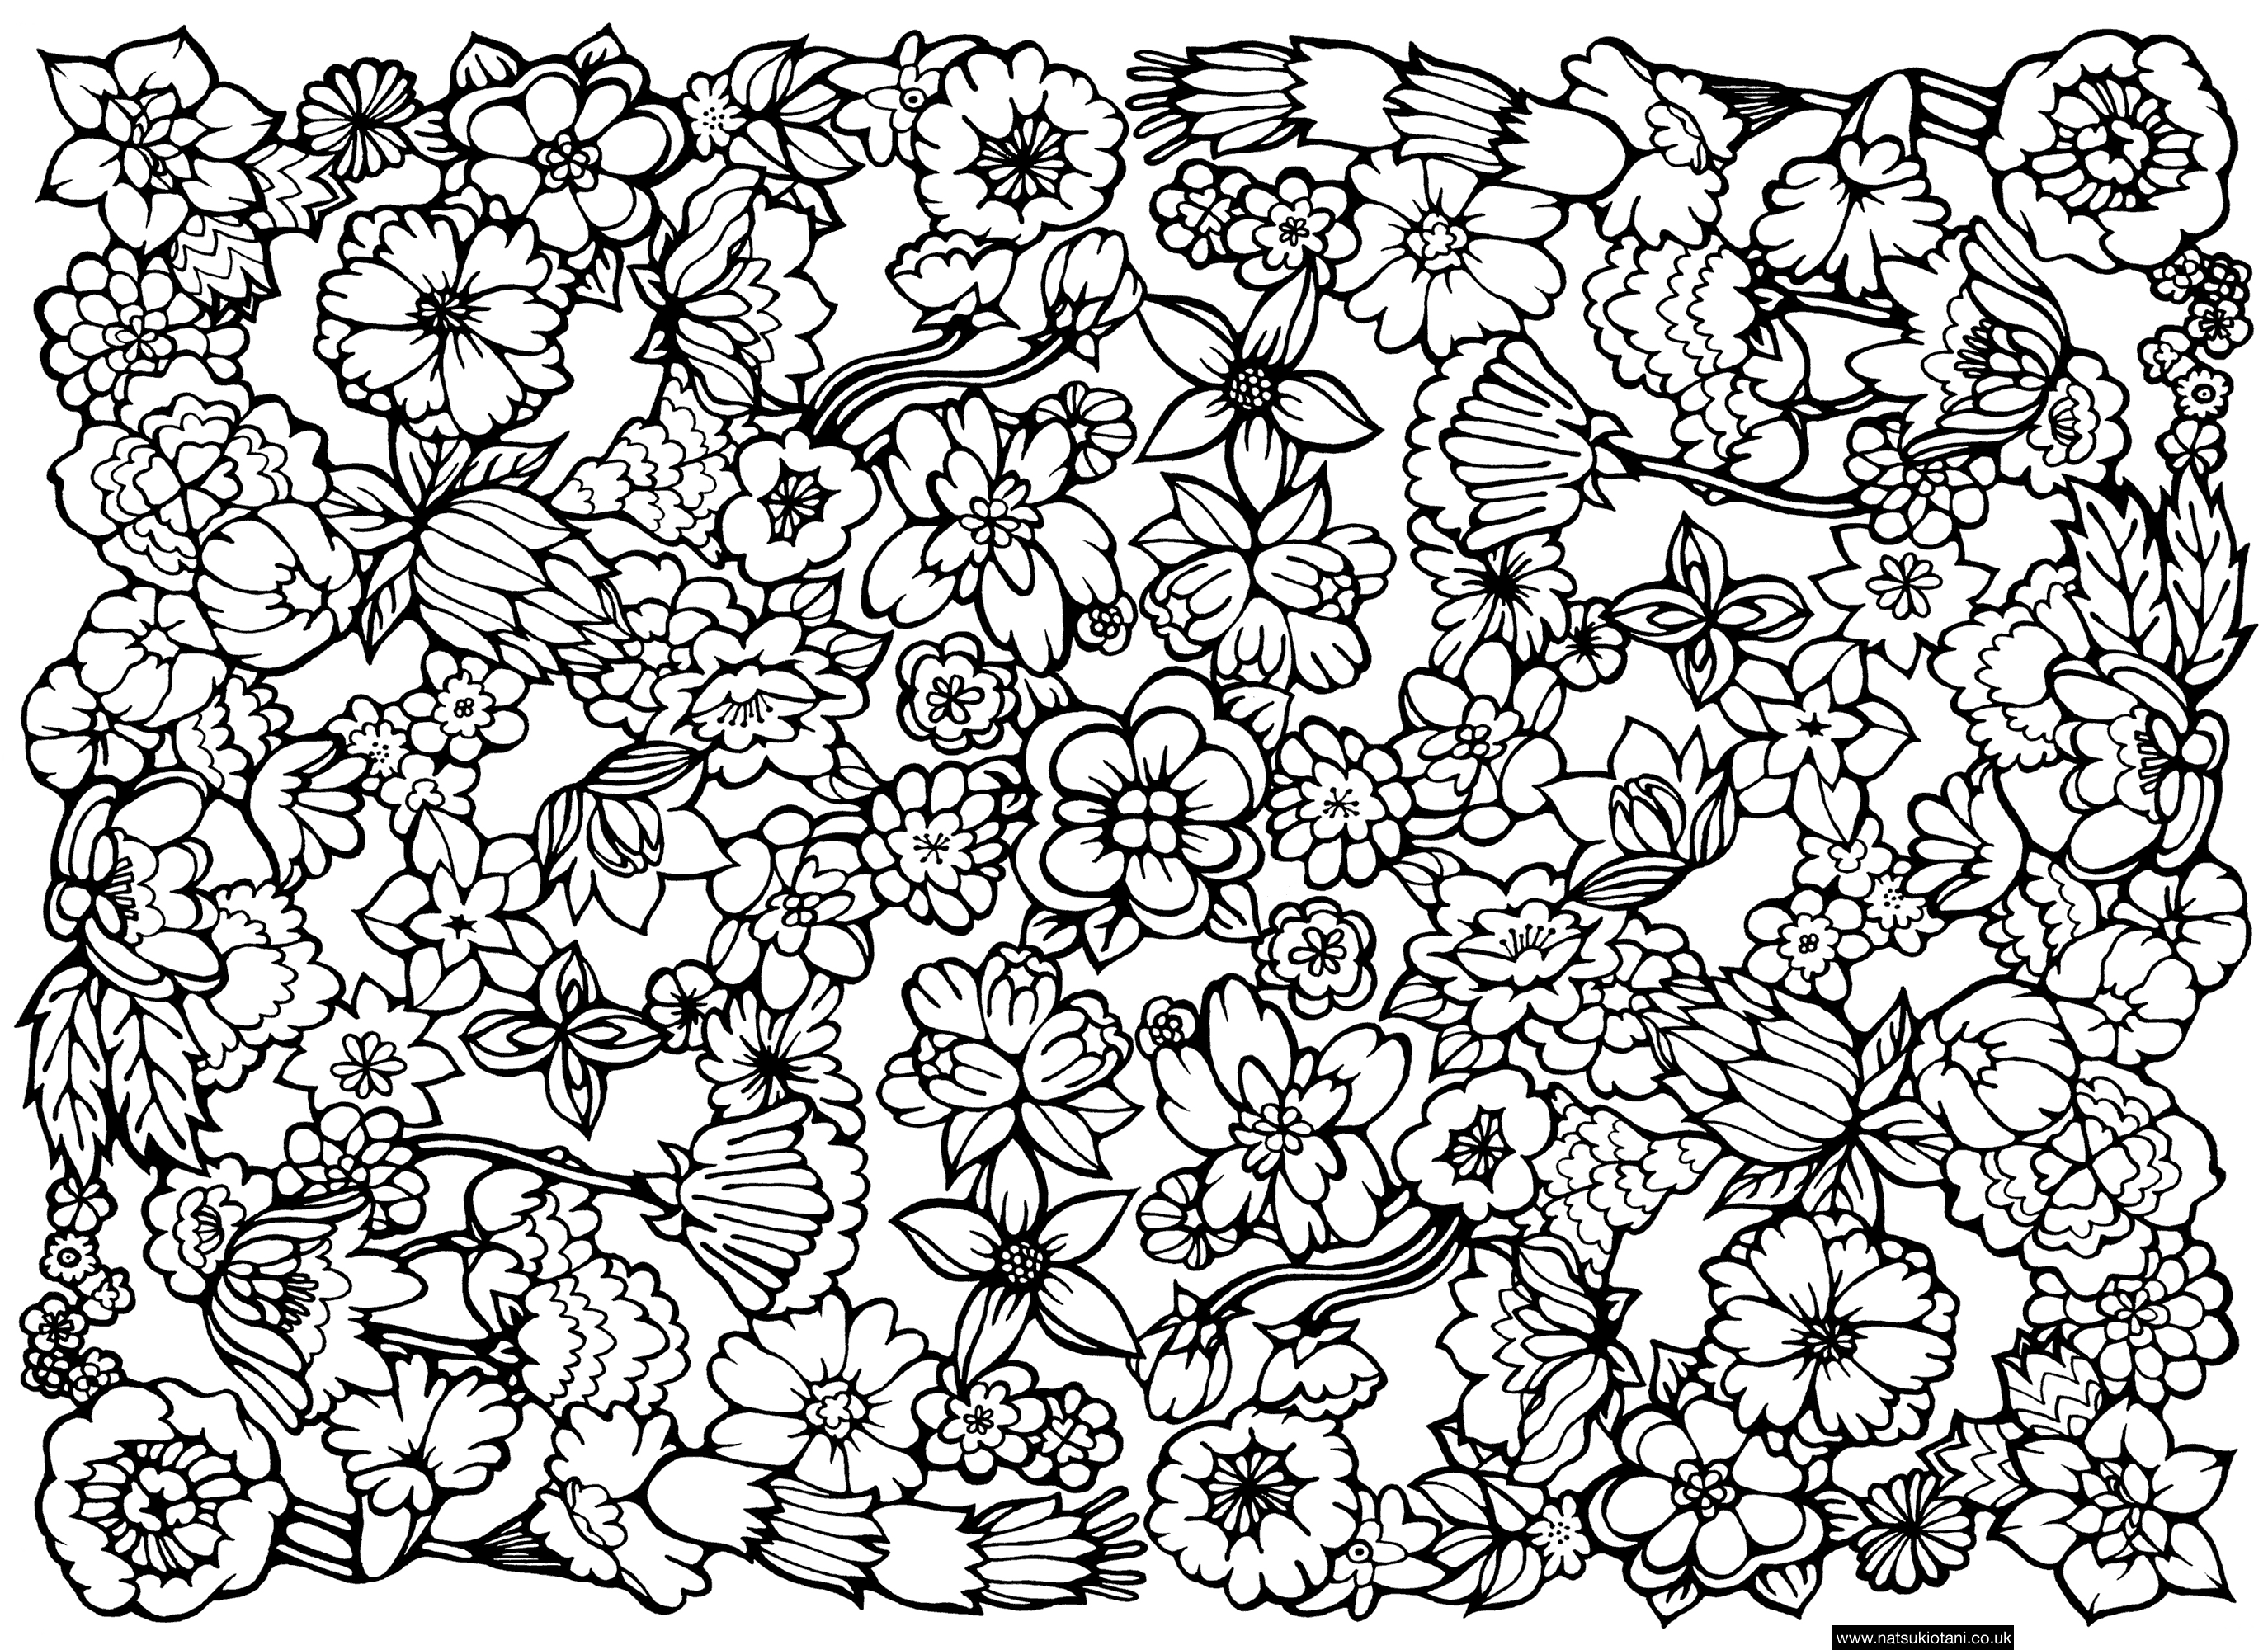 printable coloring pages of 36 patterns coloring pages 1207 free coloring pages of flower patterns on coloringpin best coloring pages for kids and adult